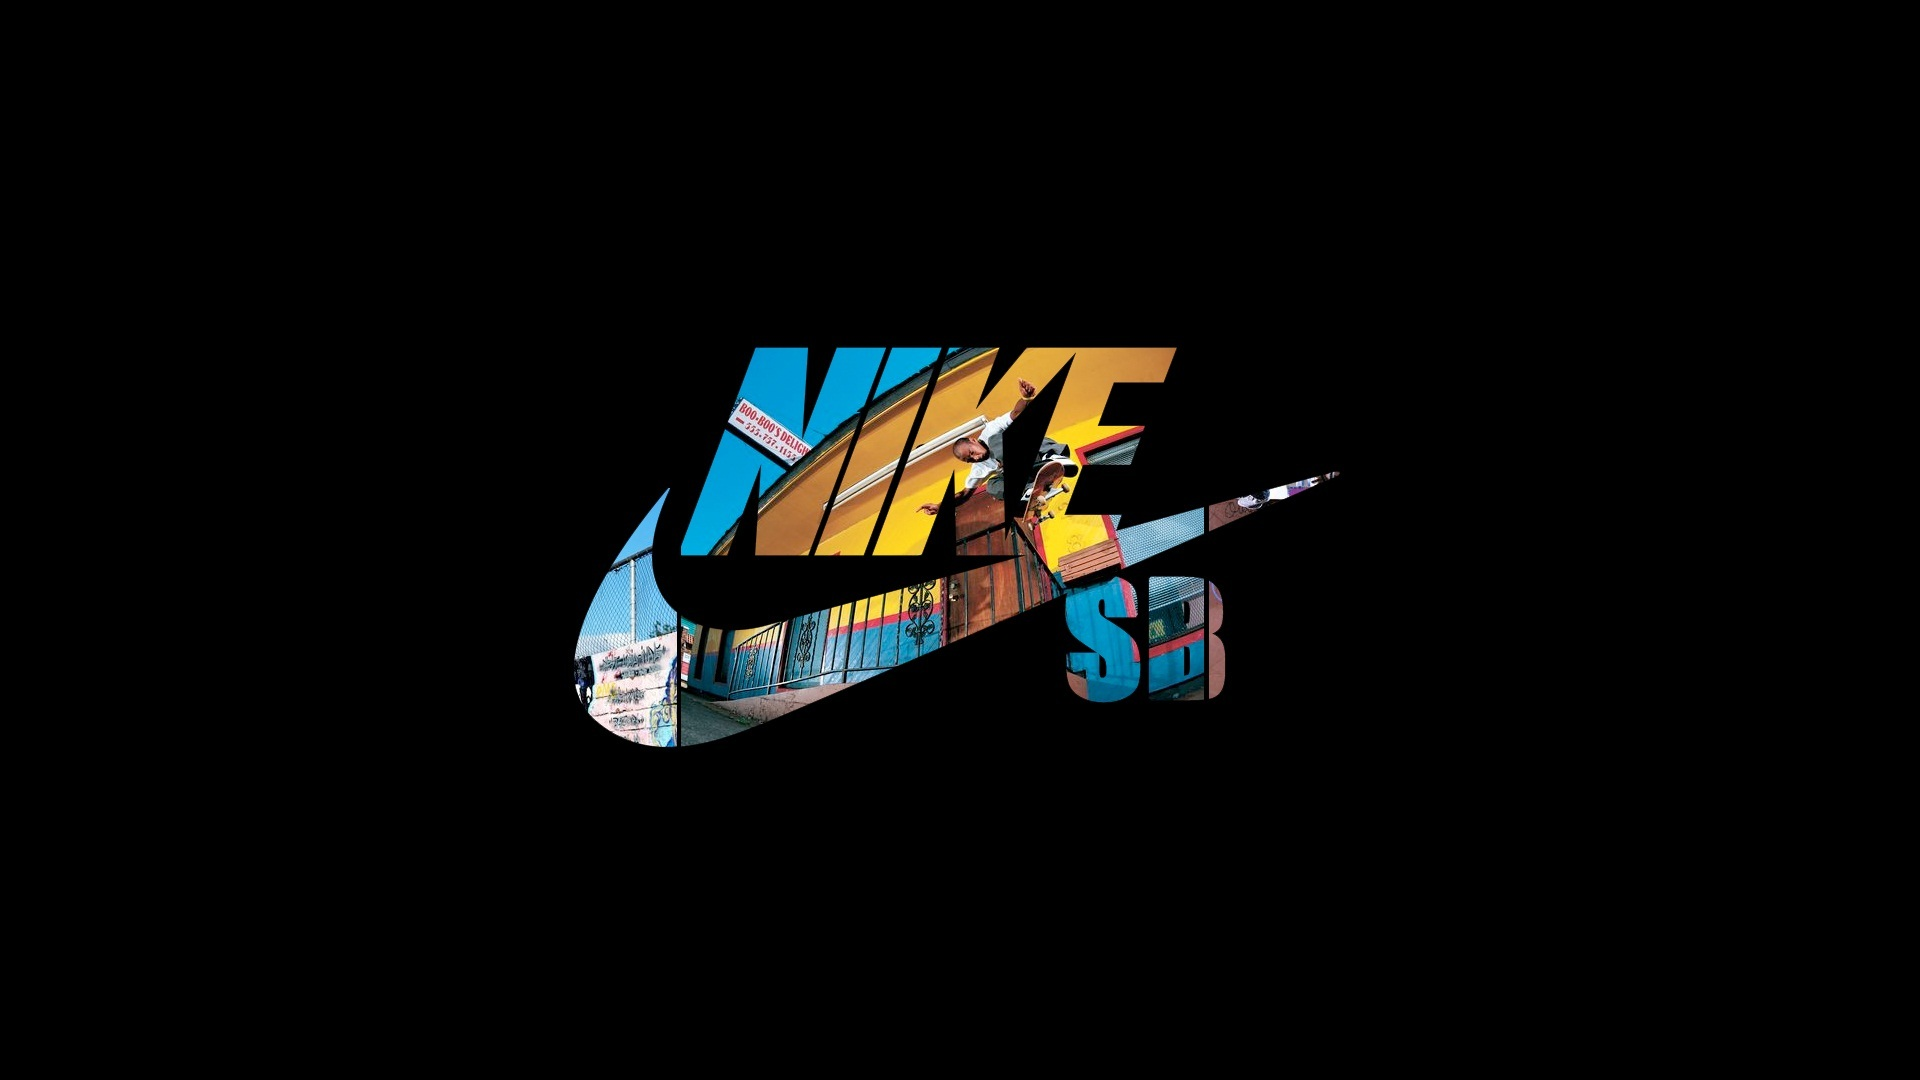 Nike Just Do It Wallpaper 46726 1920x1080px